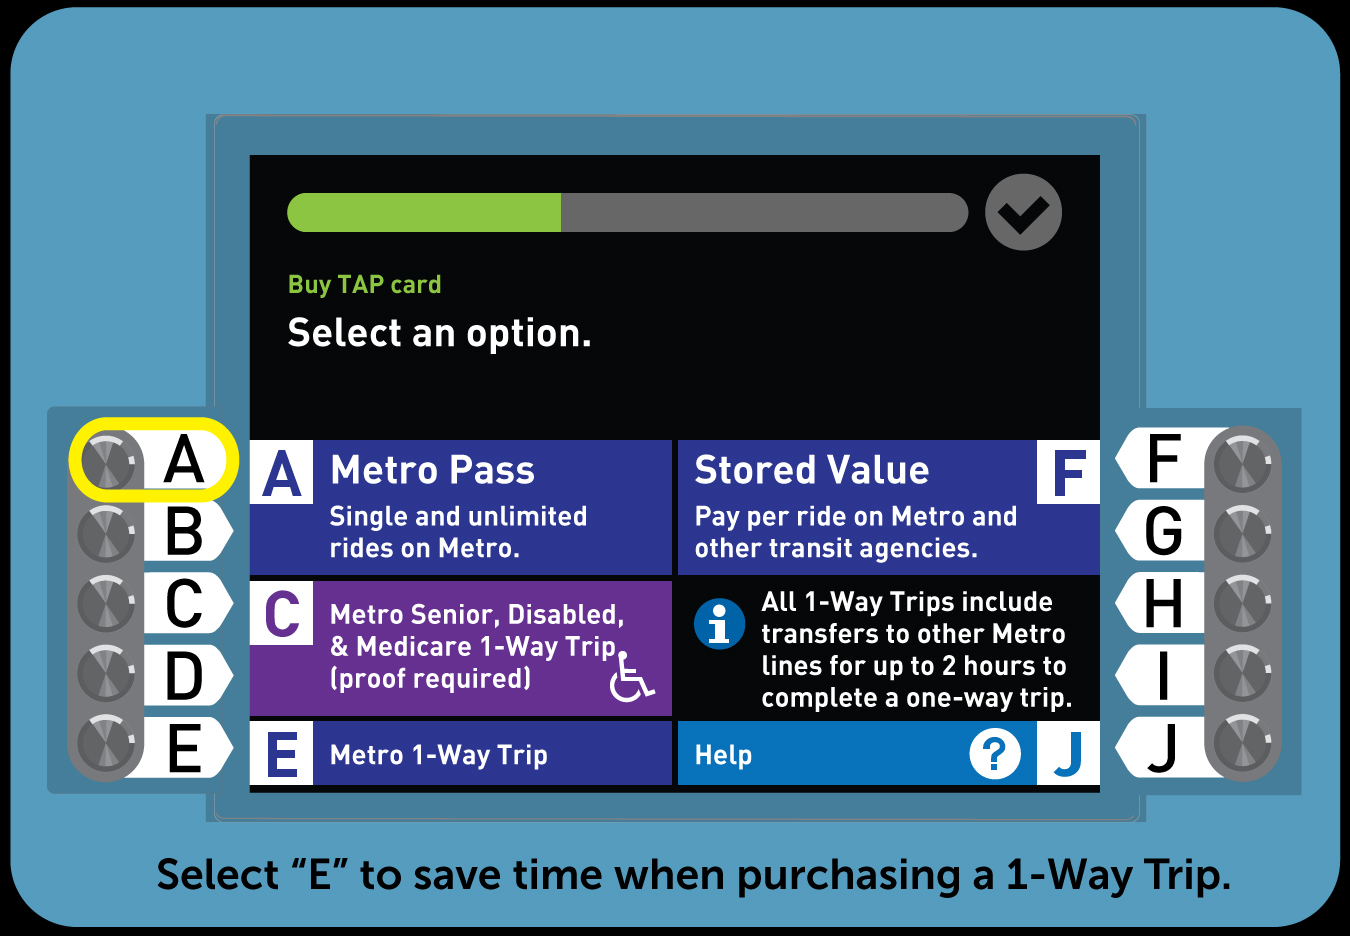 <p>3. Buy a Regular TAP card with a Day Pass</p>